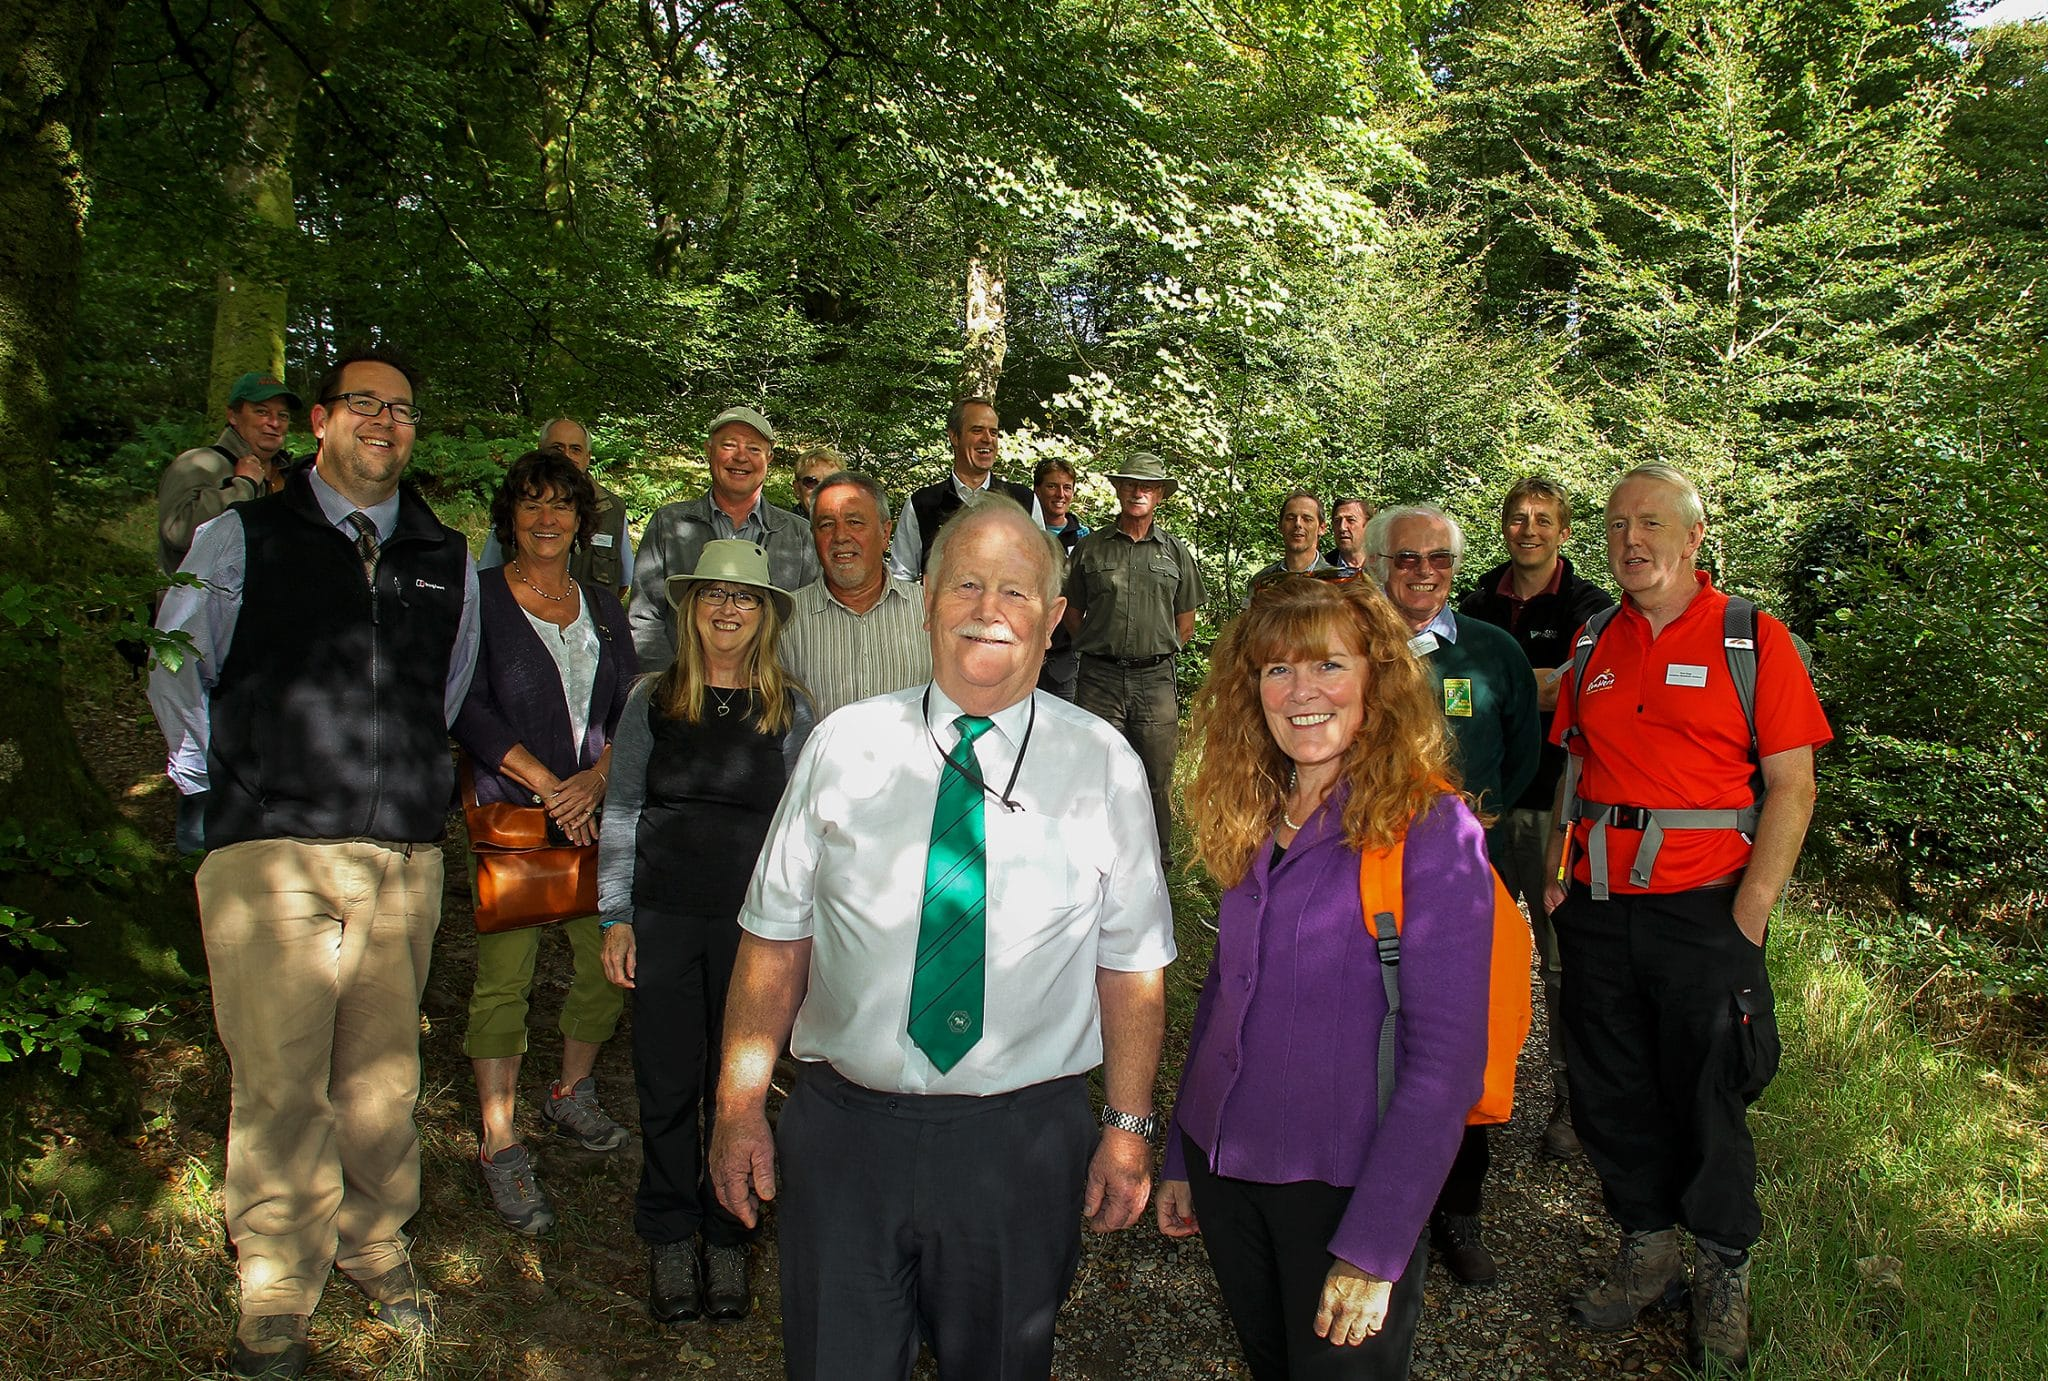 Photo of walkers on the Two Moors Way, Devon's Coast to Coast walking route on the 40th Anniversary of the route opening